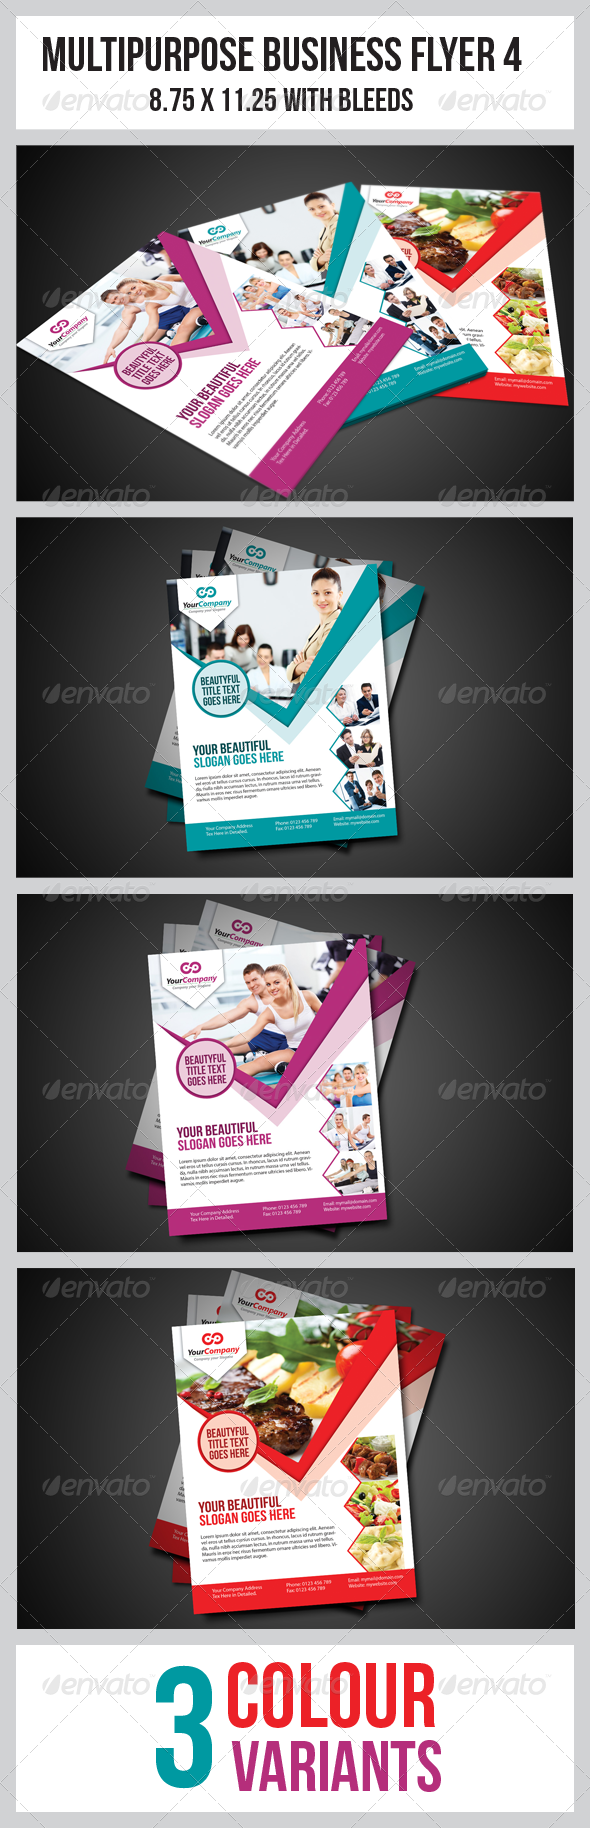 Multipurpose Business Flyer 4 - Commerce Flyers